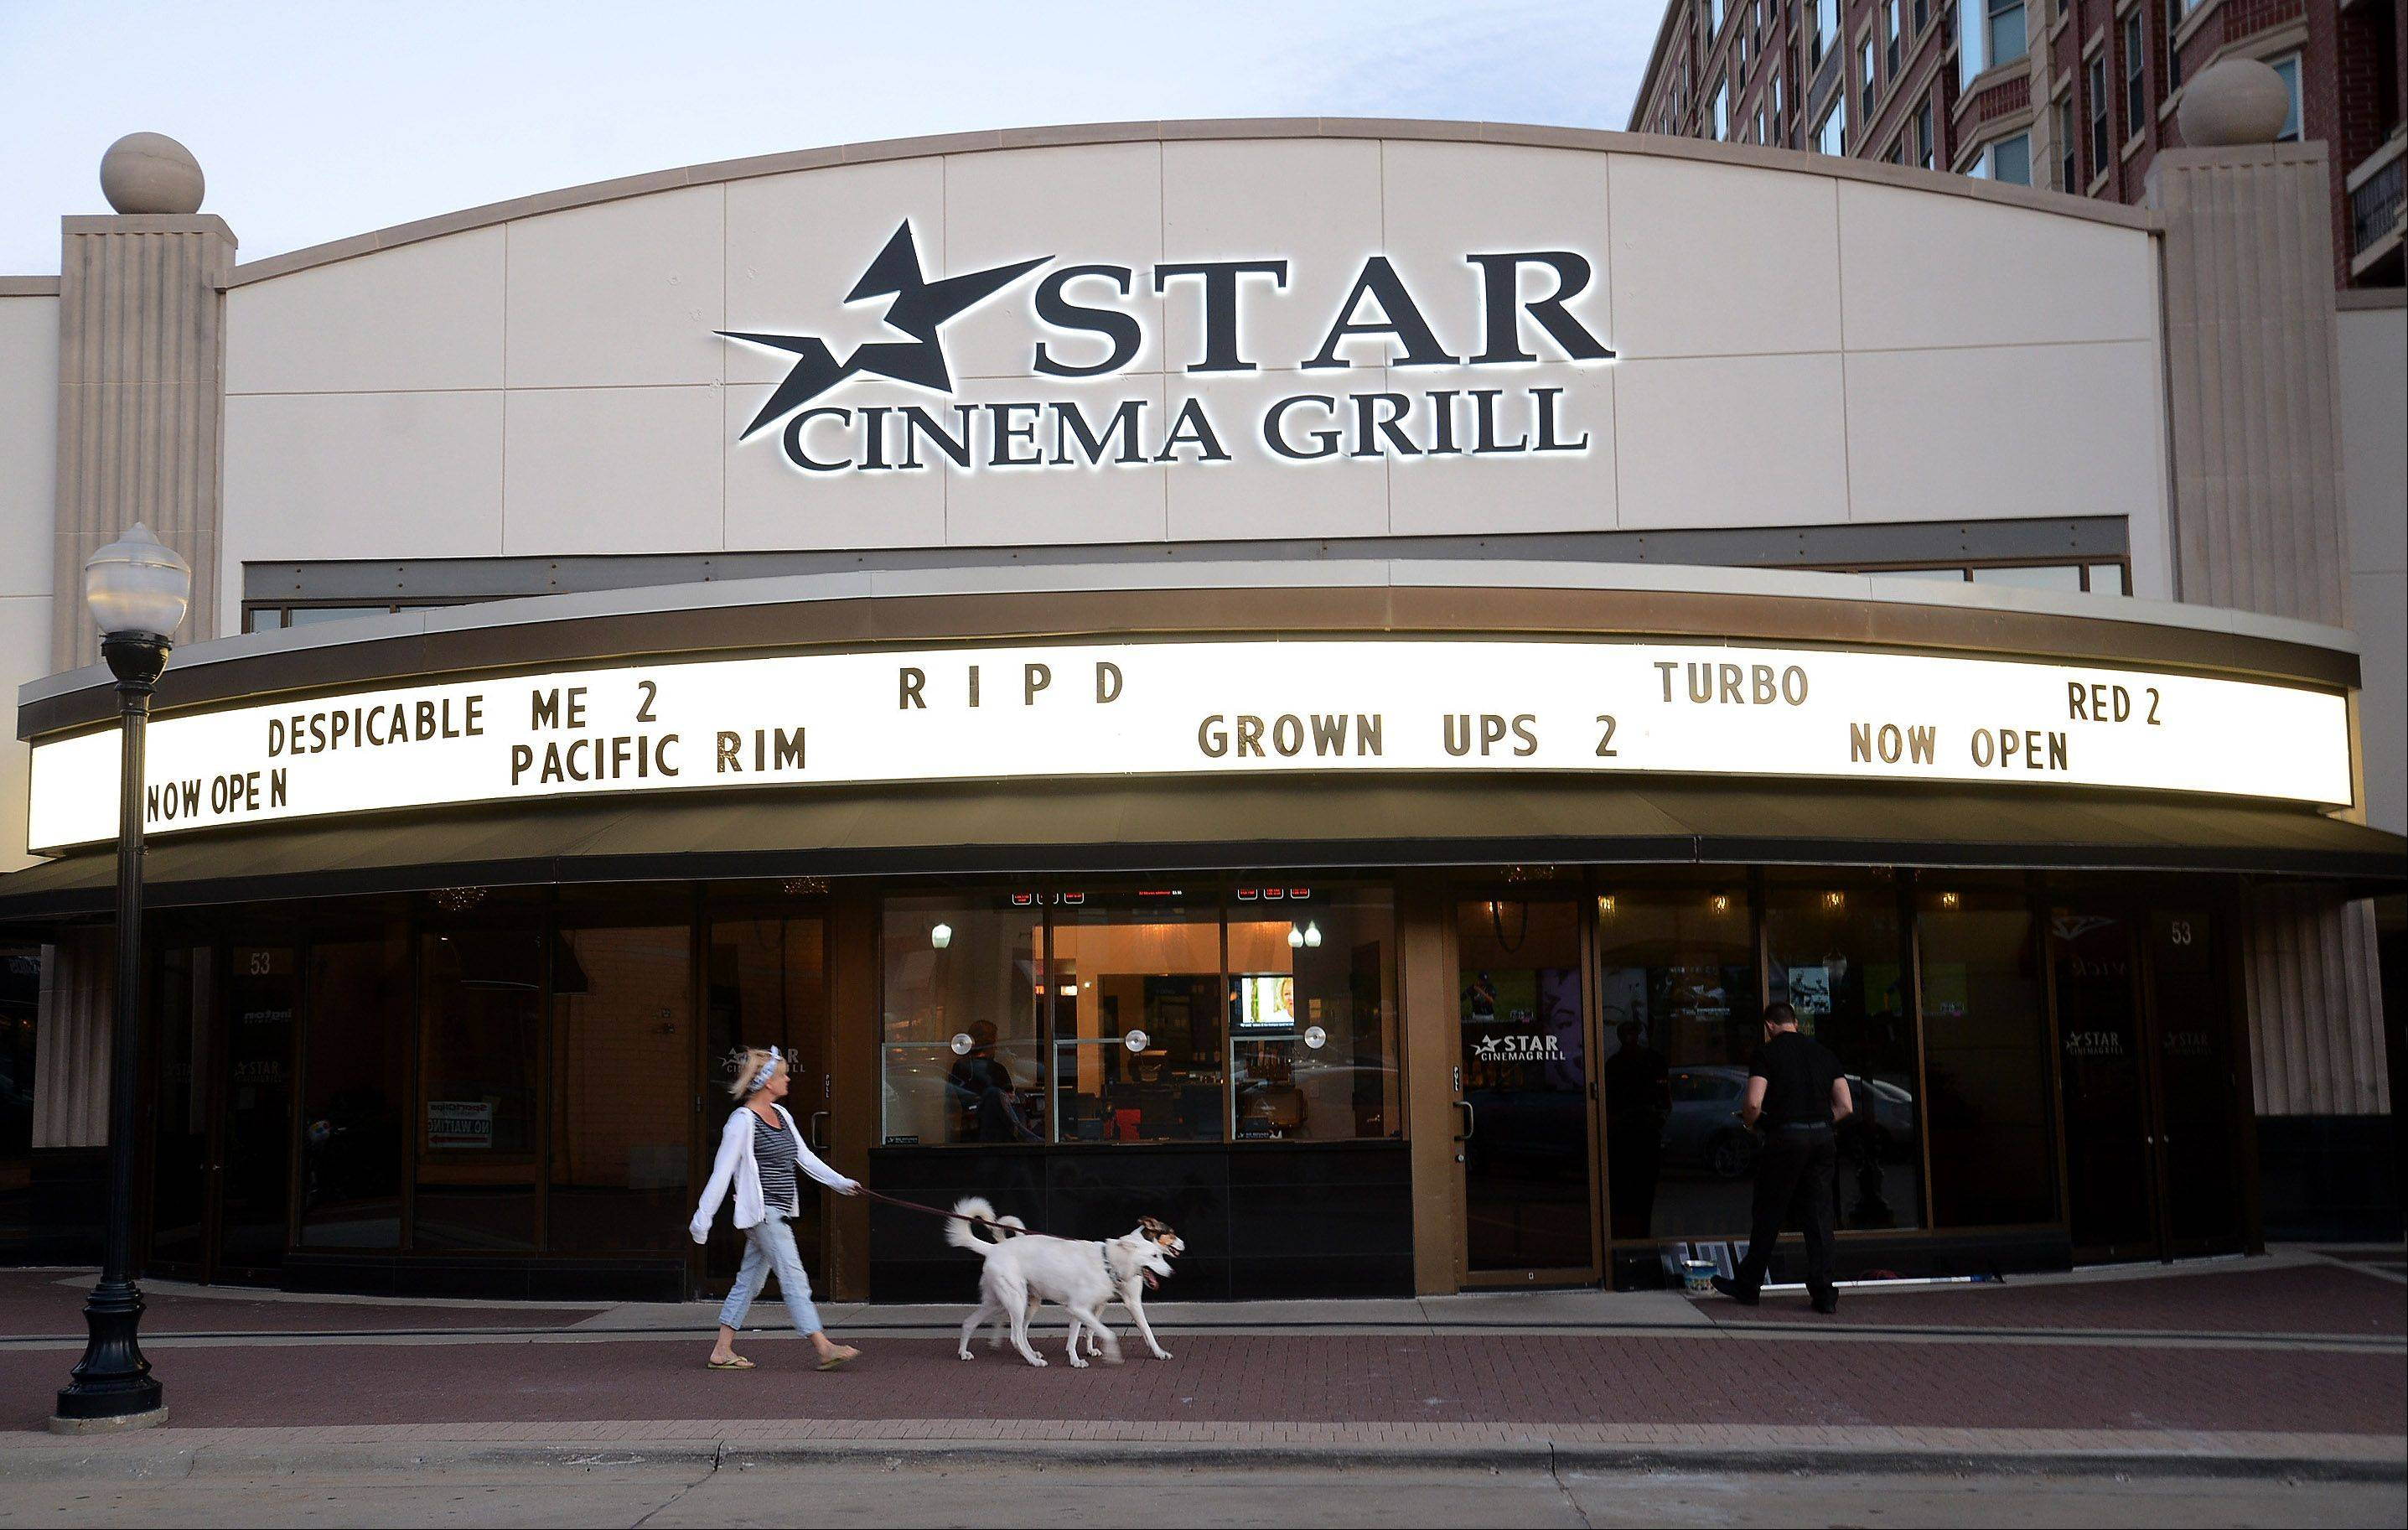 The new Star Cinema Grill opened July 5.